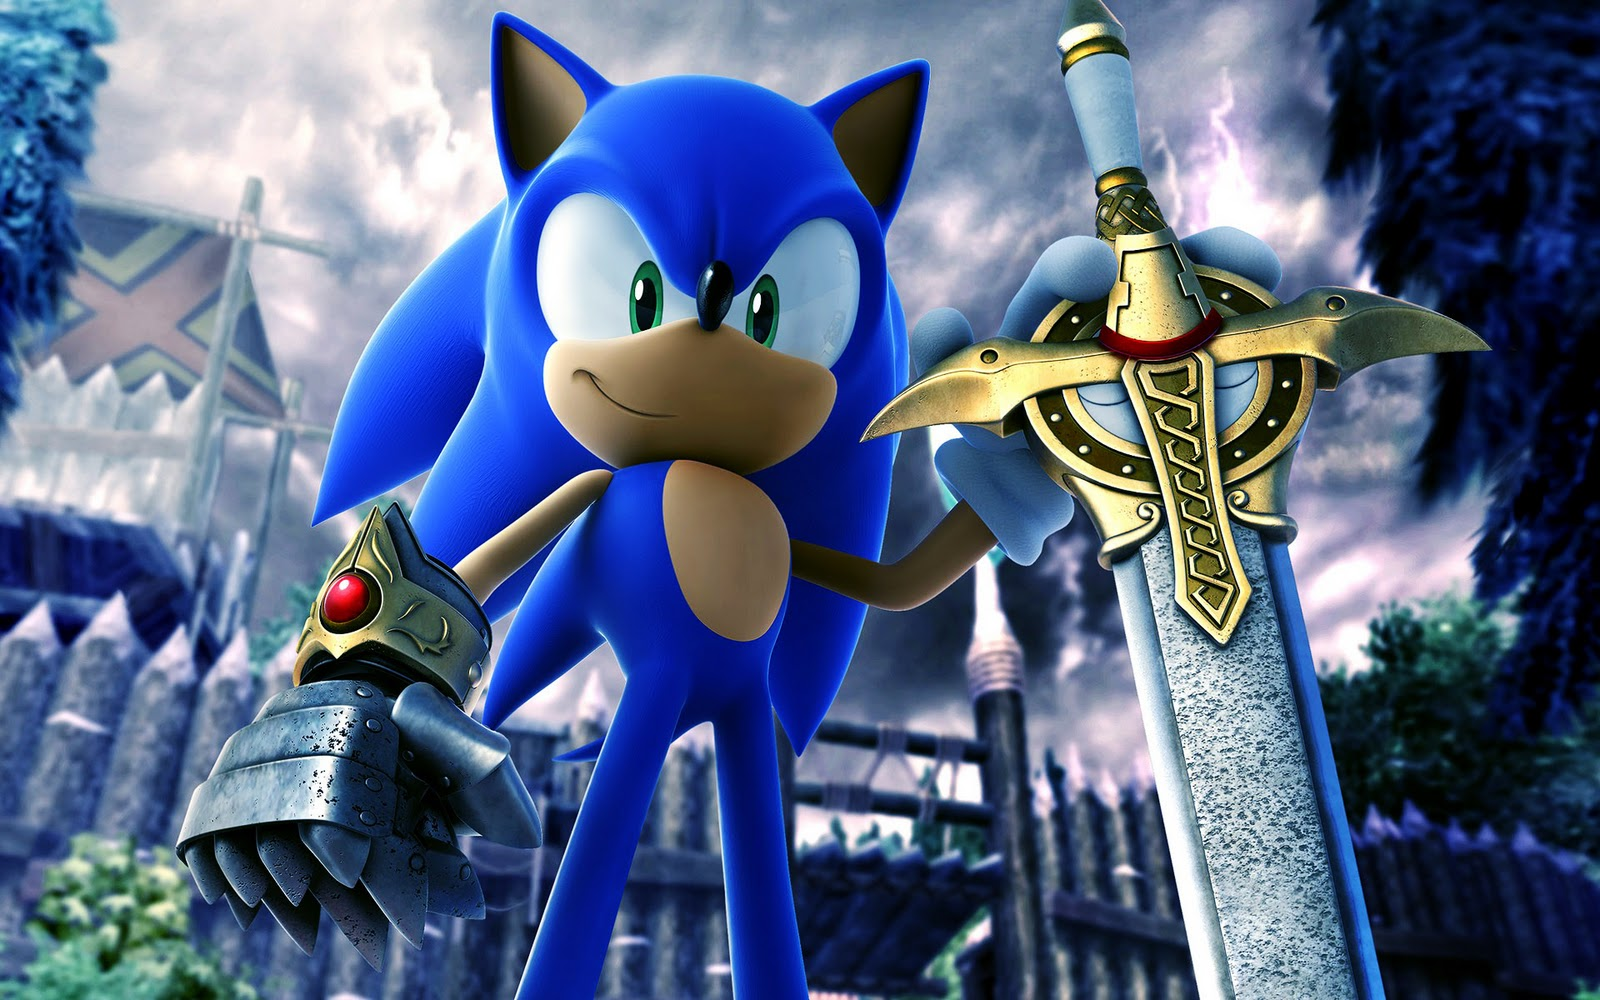 http://1.bp.blogspot.com/-i0JLap74q7c/TyrHNdy6bVI/AAAAAAAAAfU/6_WDZjZ12r0/s1600/Sonic_and_The_Dark_Knight_with_Sward_3D_HD_Wallpaper-Vvallpaper.Net.jpg